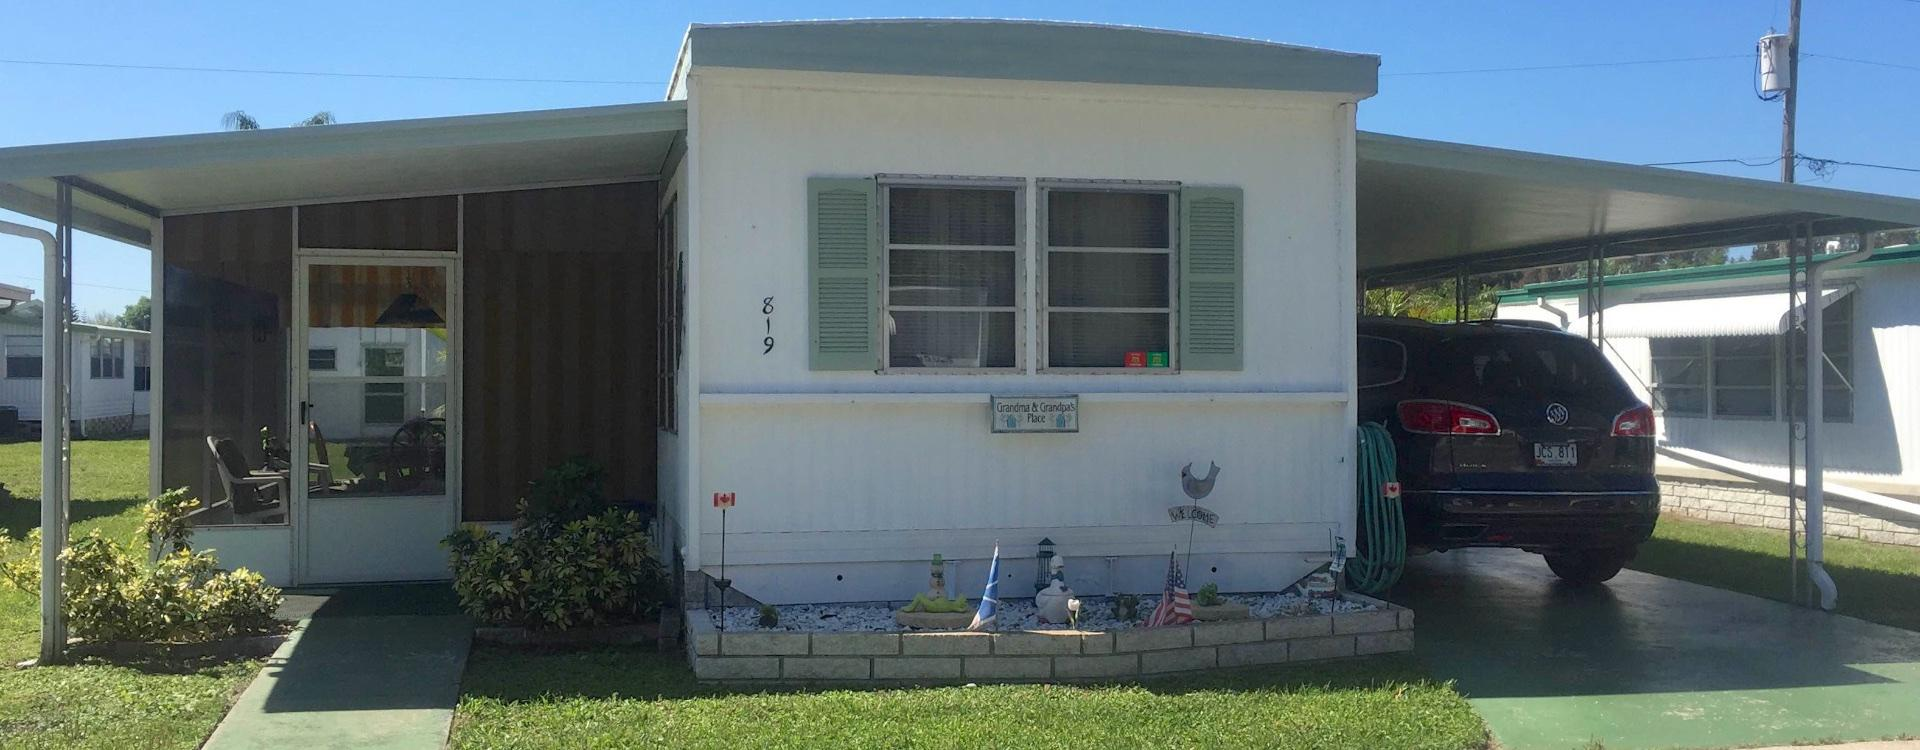 City Of New Port Richey >> Mobile Home For Sale - Clearwater, FL Embassy MHP #819